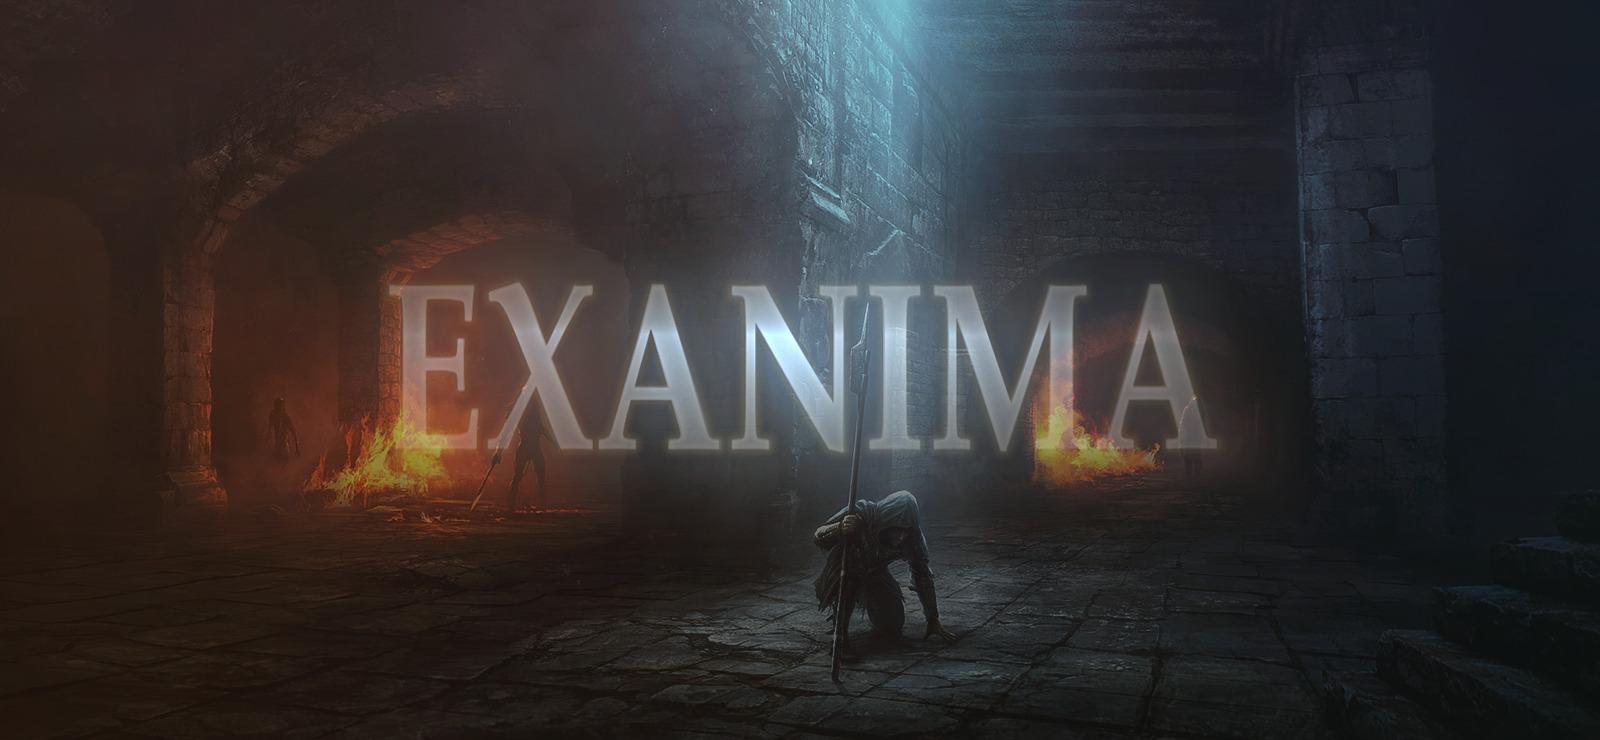 Exanima Y Sui Generis - Por Bare Mettle Entertainment 2fd8783e97f806bf3746cf4d6e2f46928c366f93368785e8ed7e1cfe3be77a8a